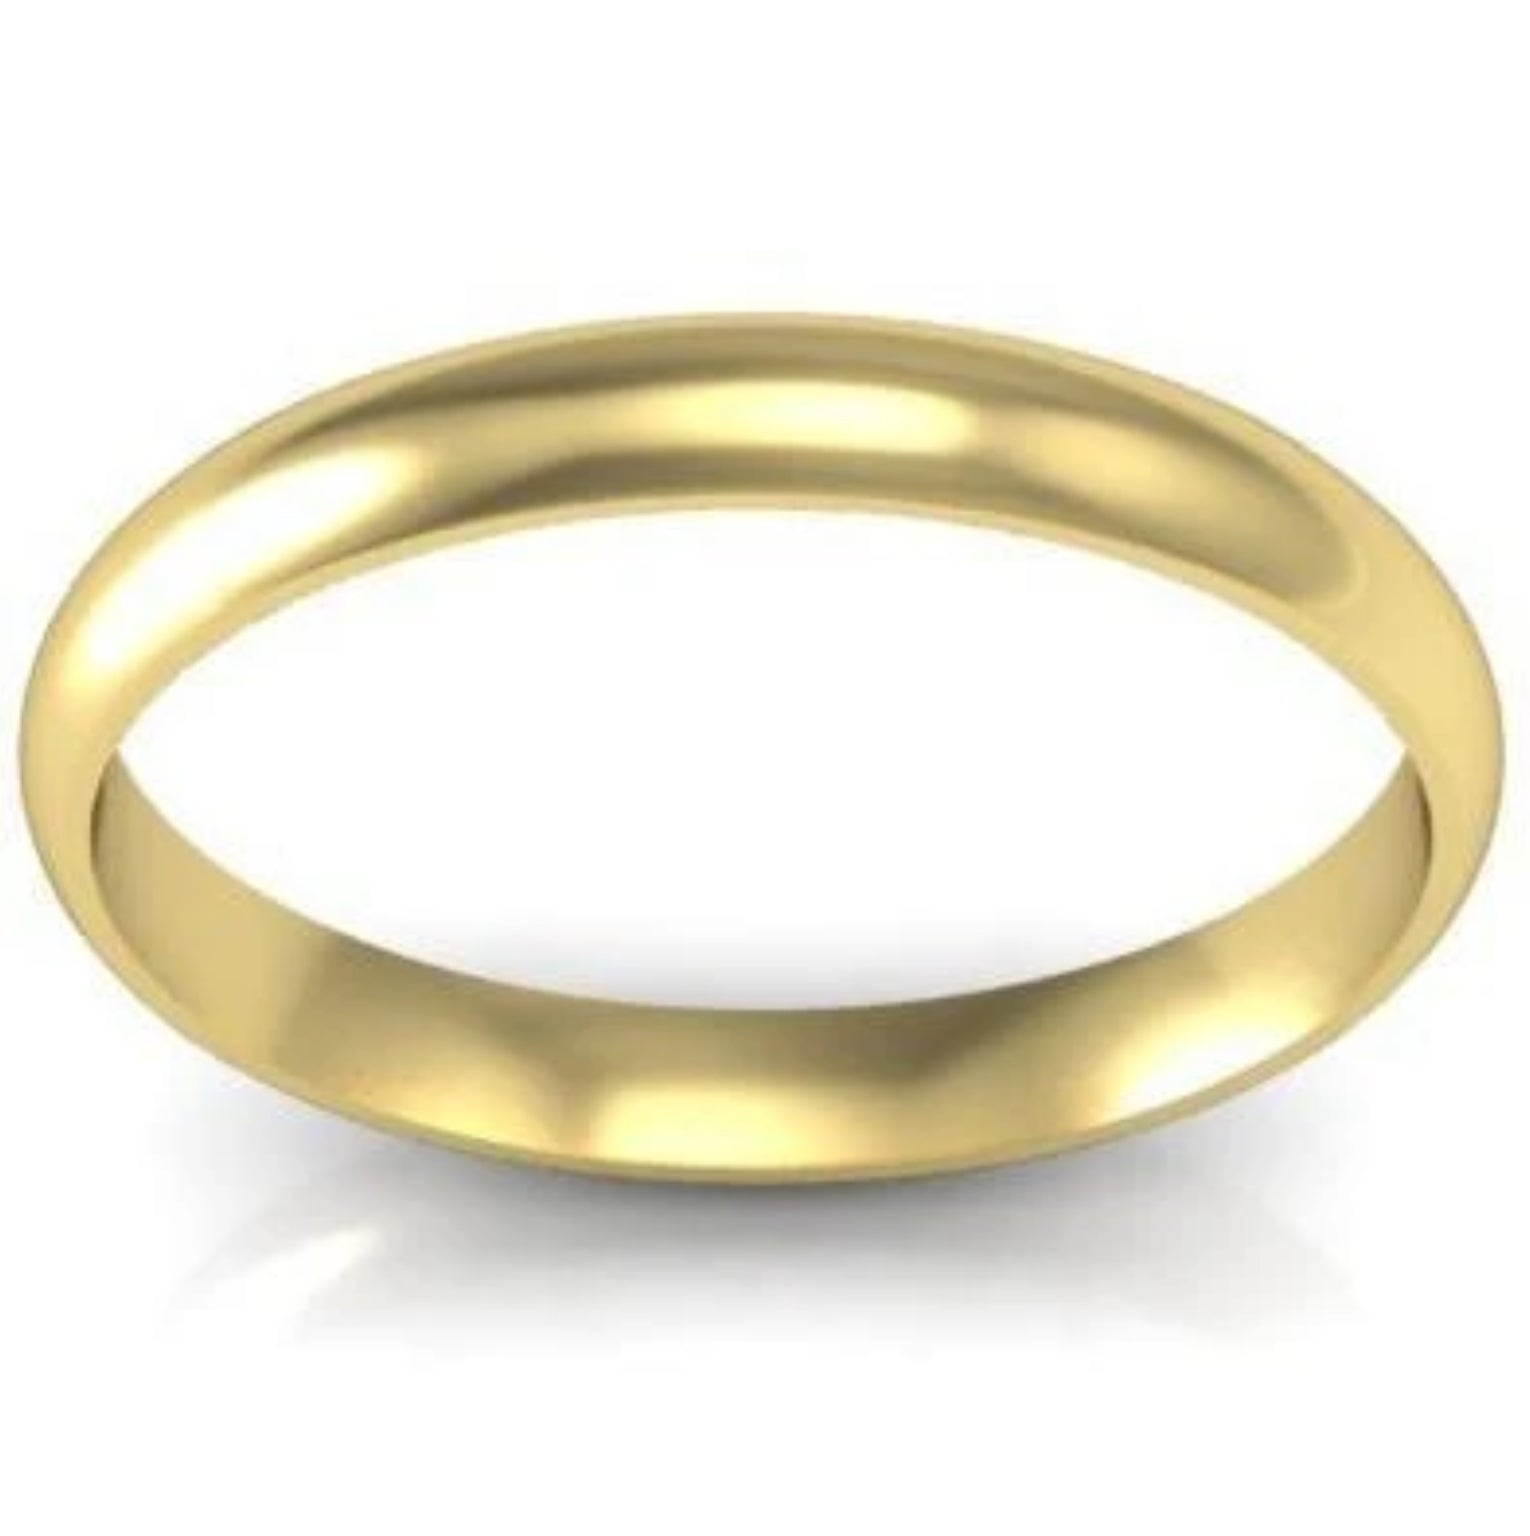 Types of Yellow Gold Wedding Rings for Women